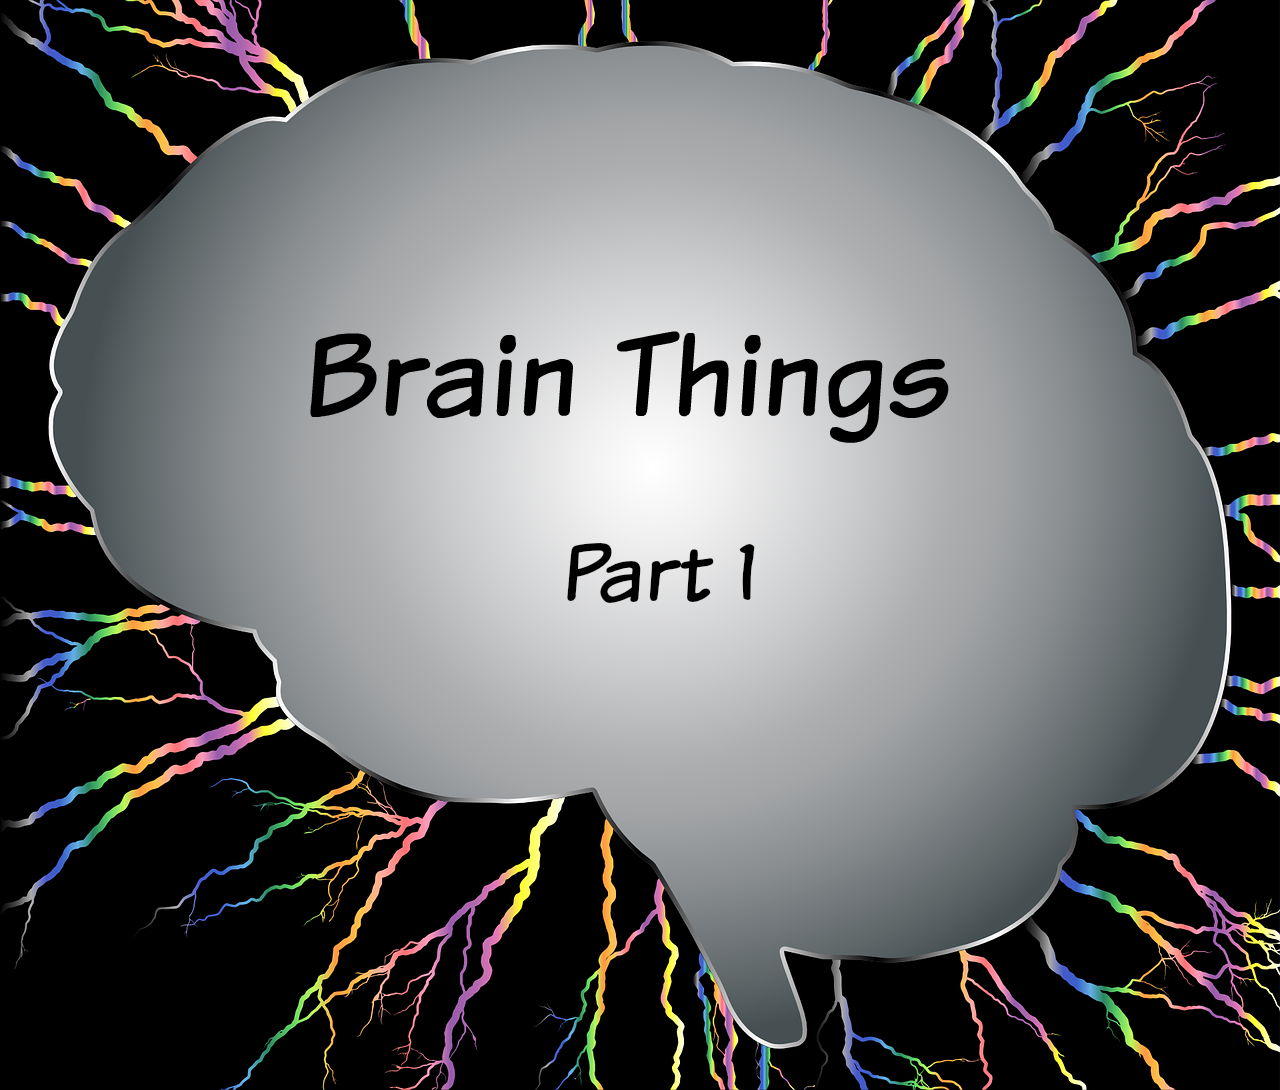 Brain Things Part 1 (Chiari Malformation)